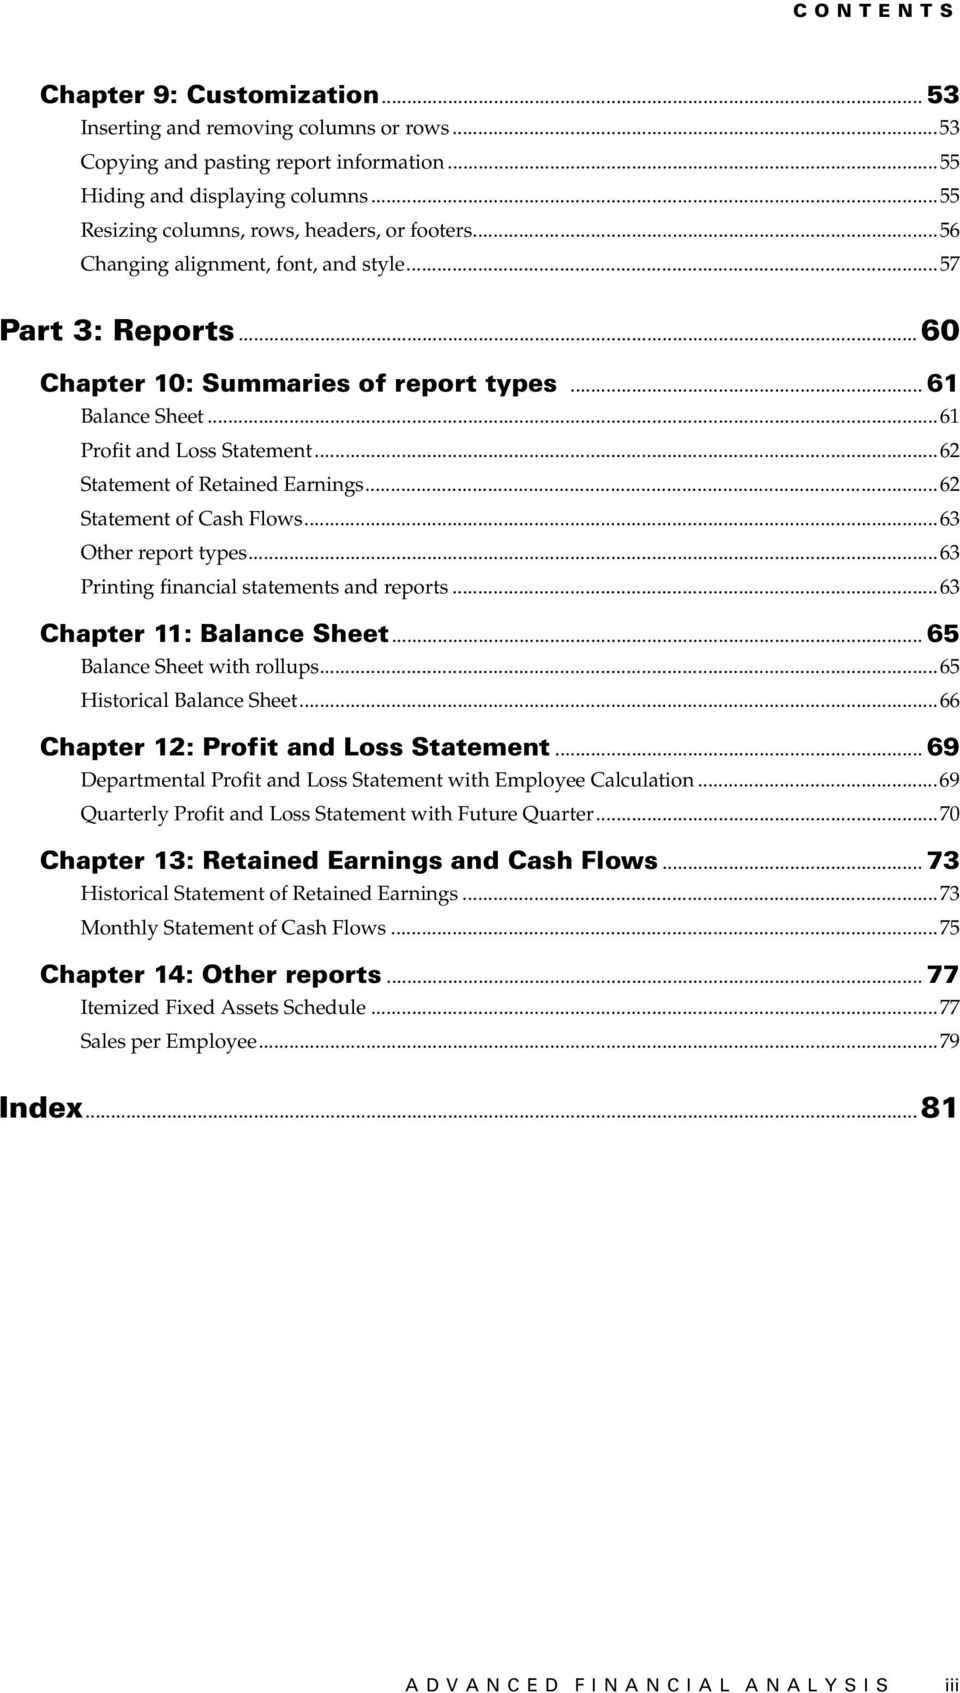 ..61 Profit and Loss Statement...62 Statement of Retained Earnings...62 Statement of Cash Flows...63 Other report types...63 Printing financial statements and reports...63 Chapter 11: Balance Sheet.